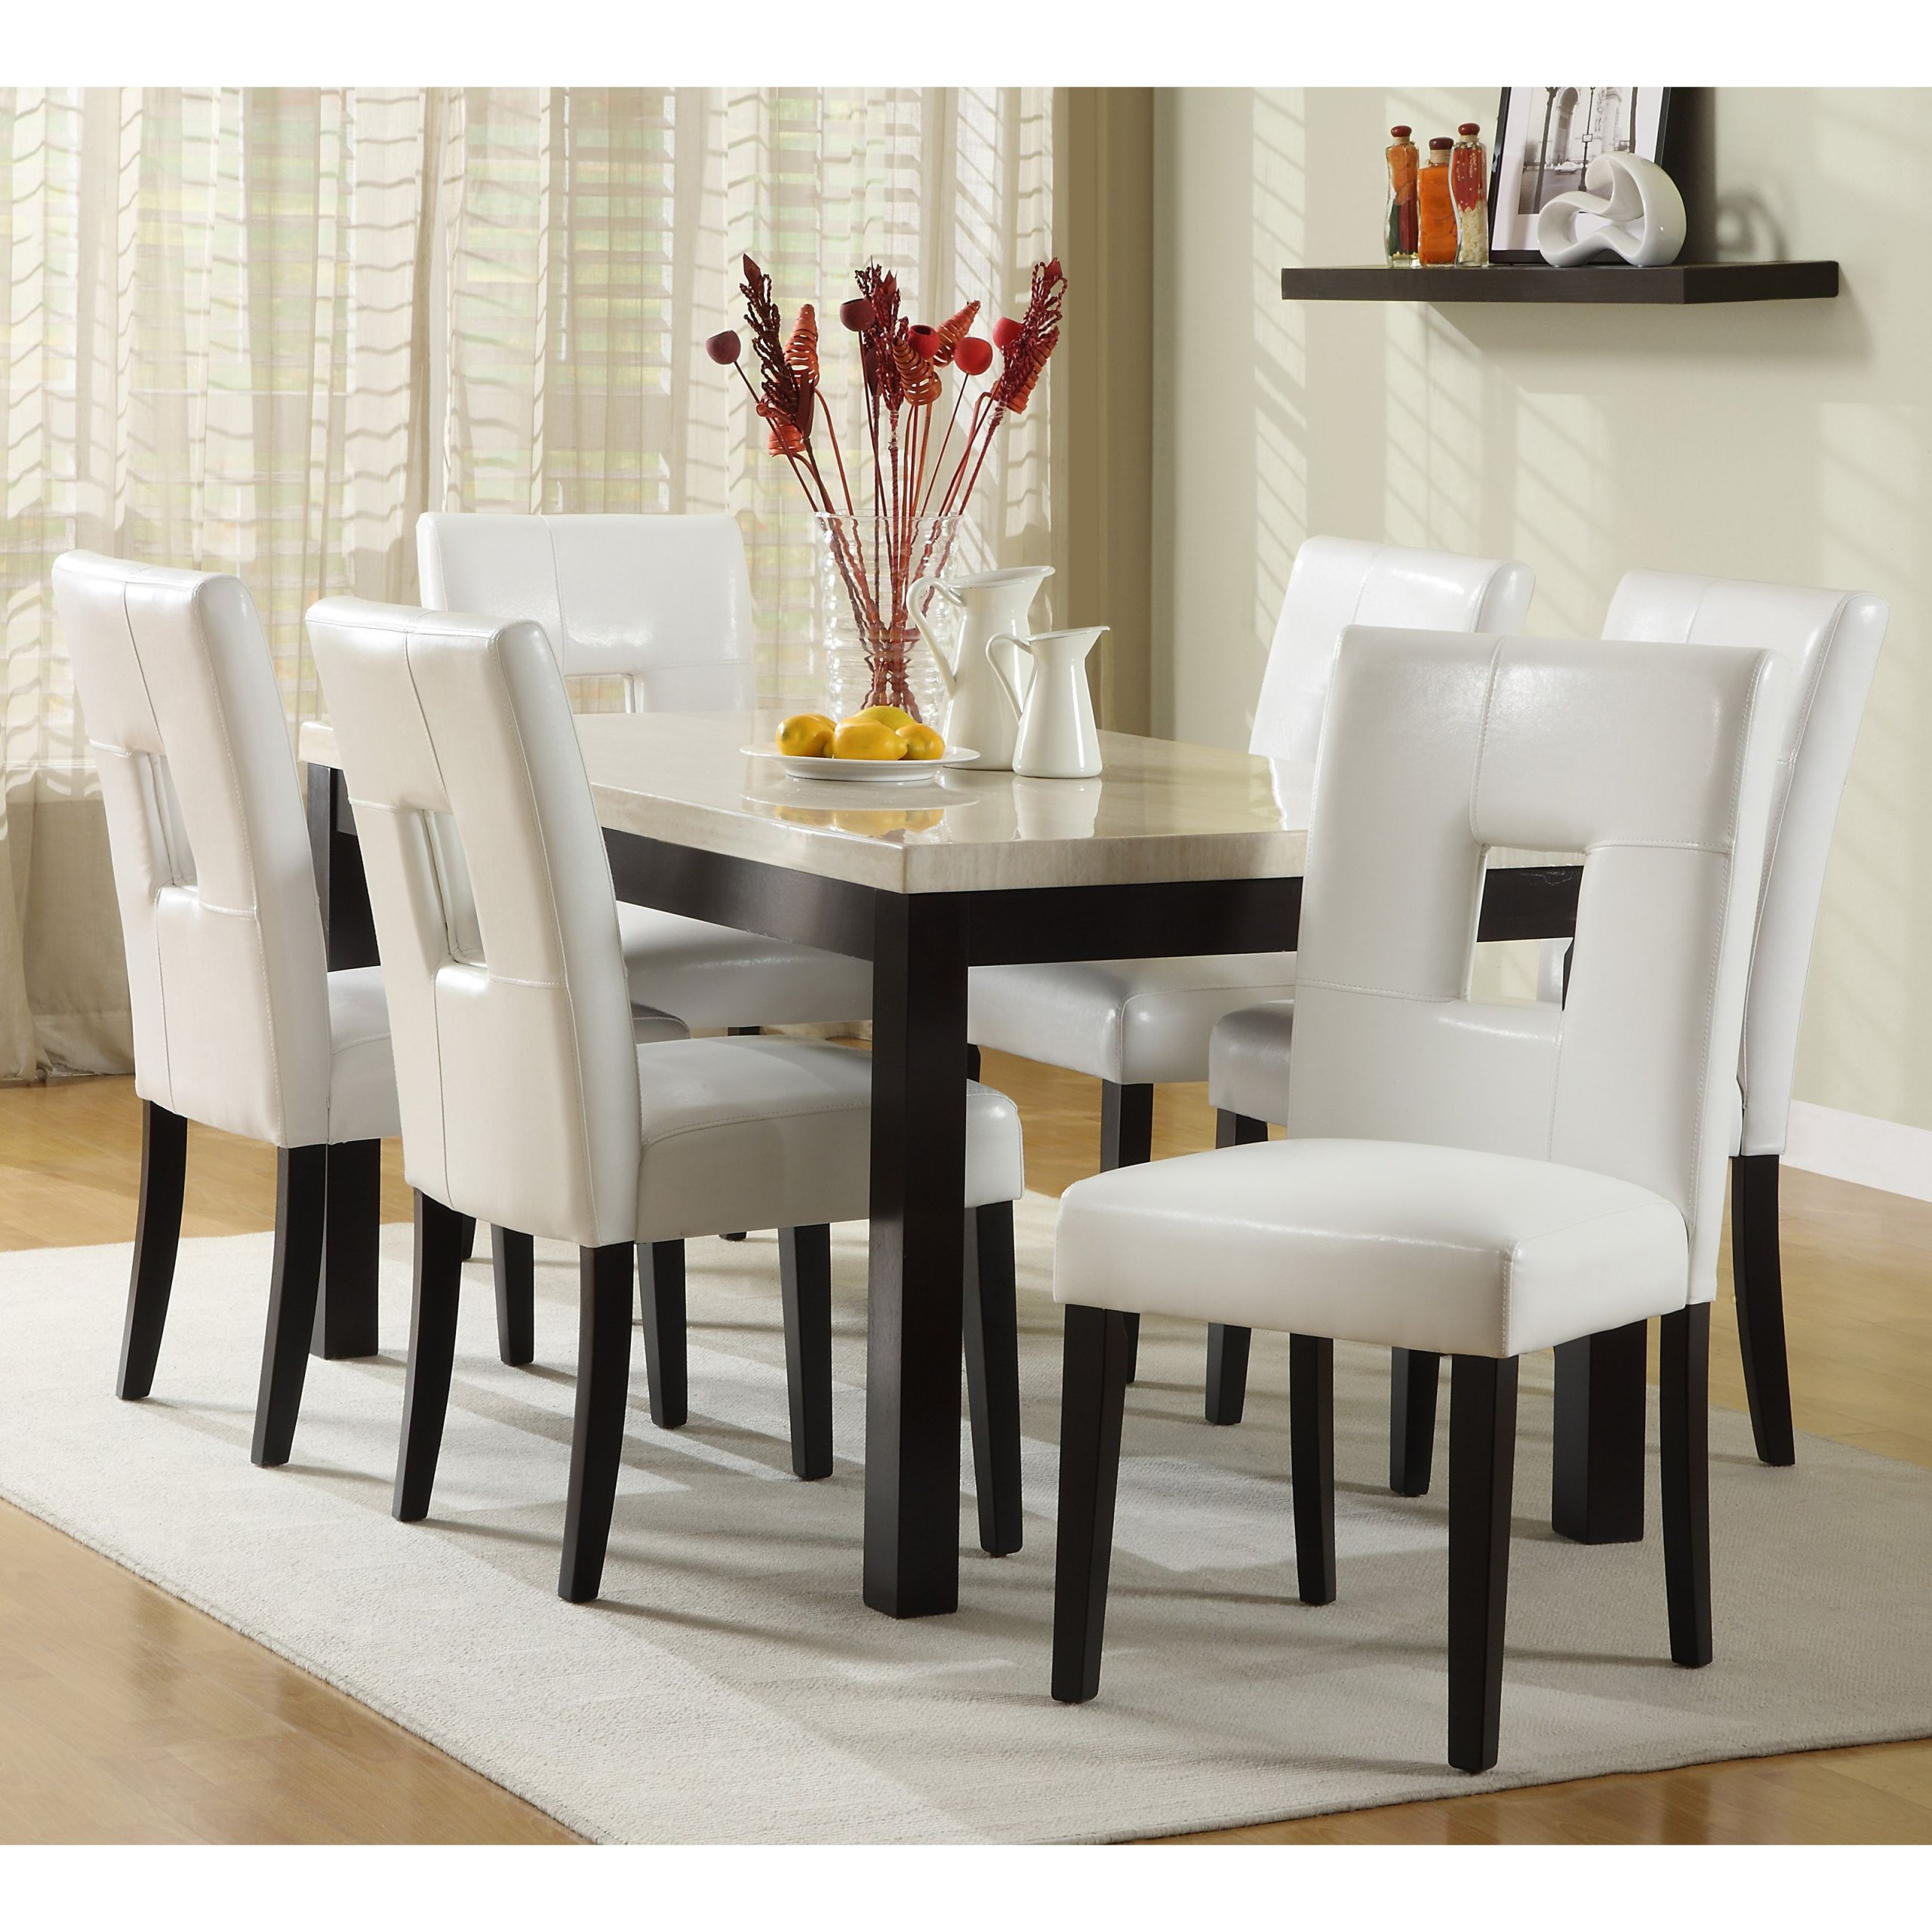 Round White Kitchen Table Sets  Beautiful White Round Kitchen Table and Chairs